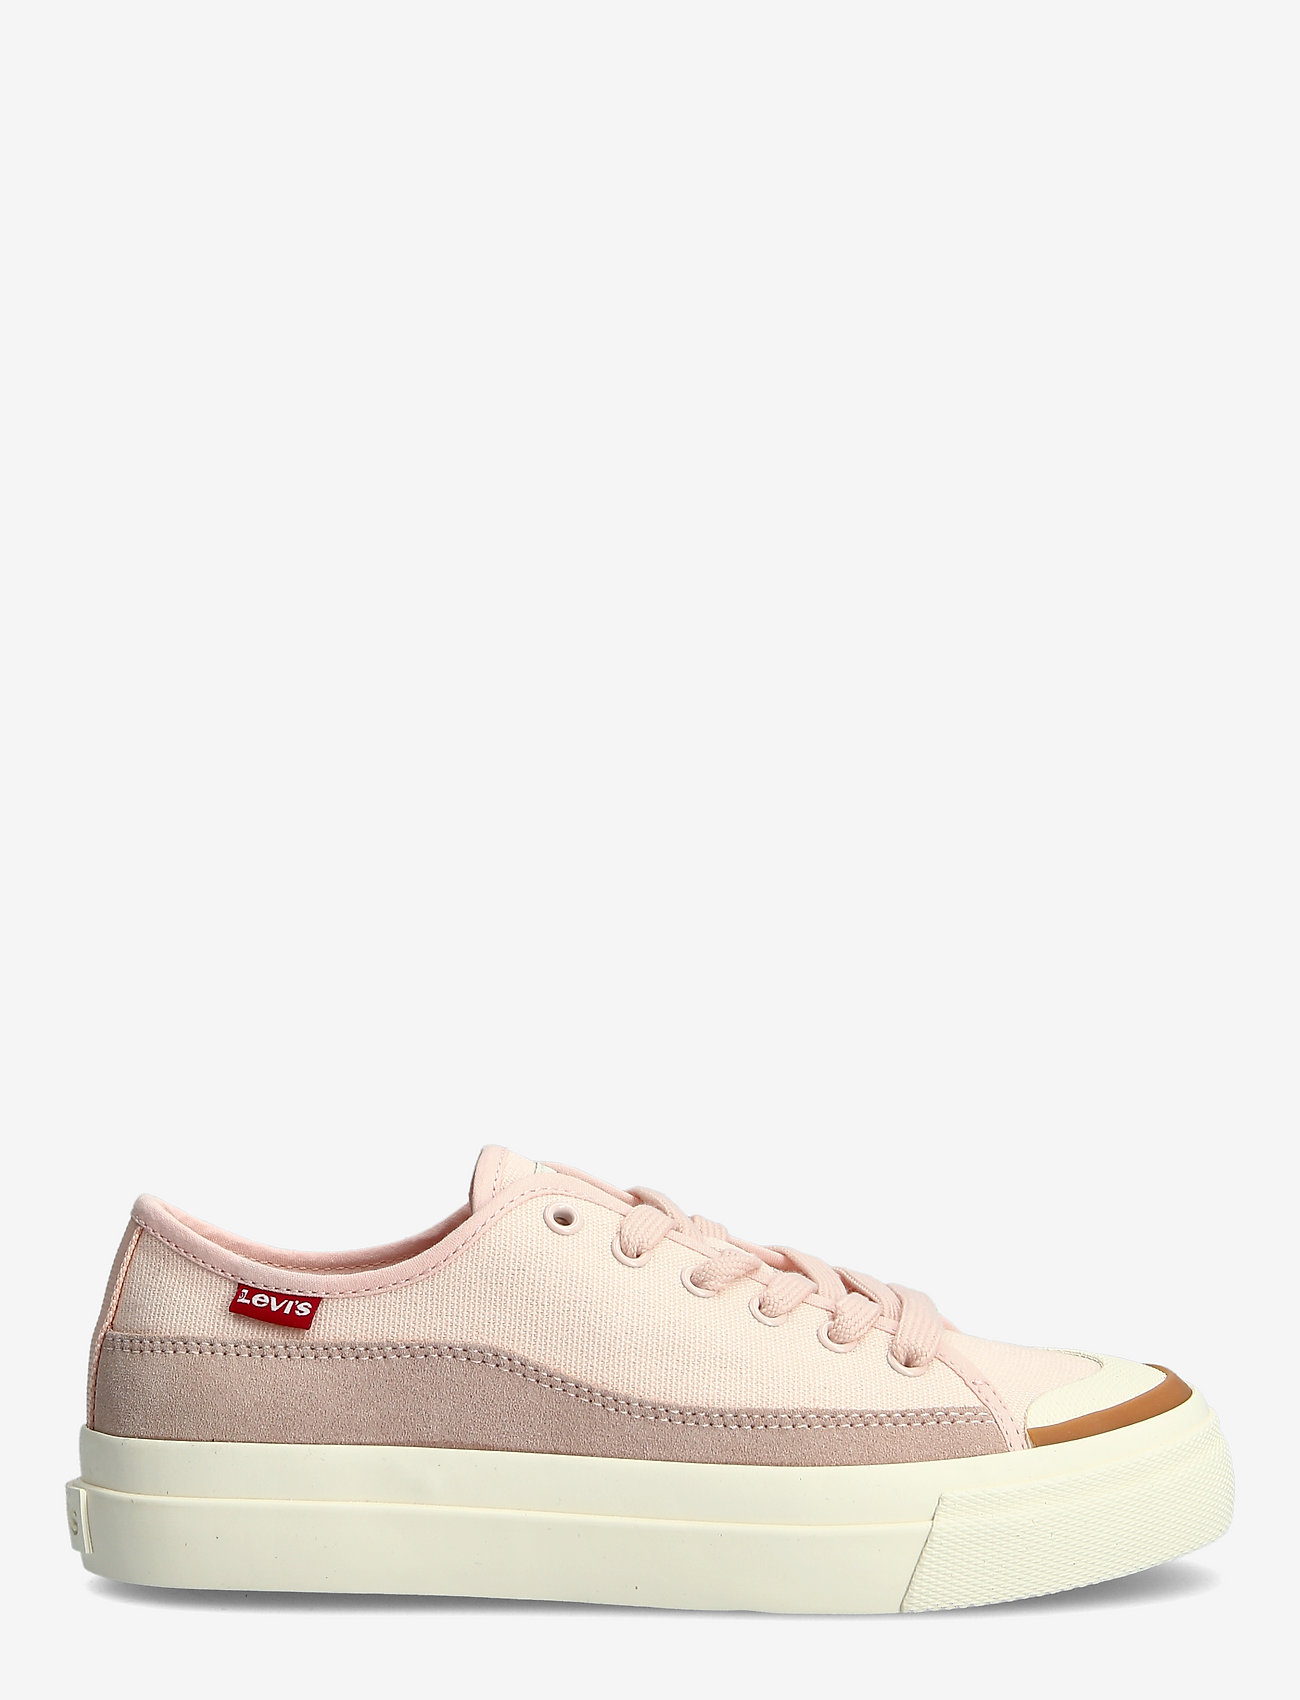 Levi's Shoes - SQUARE LOW S - lave sneakers - light pink - 1